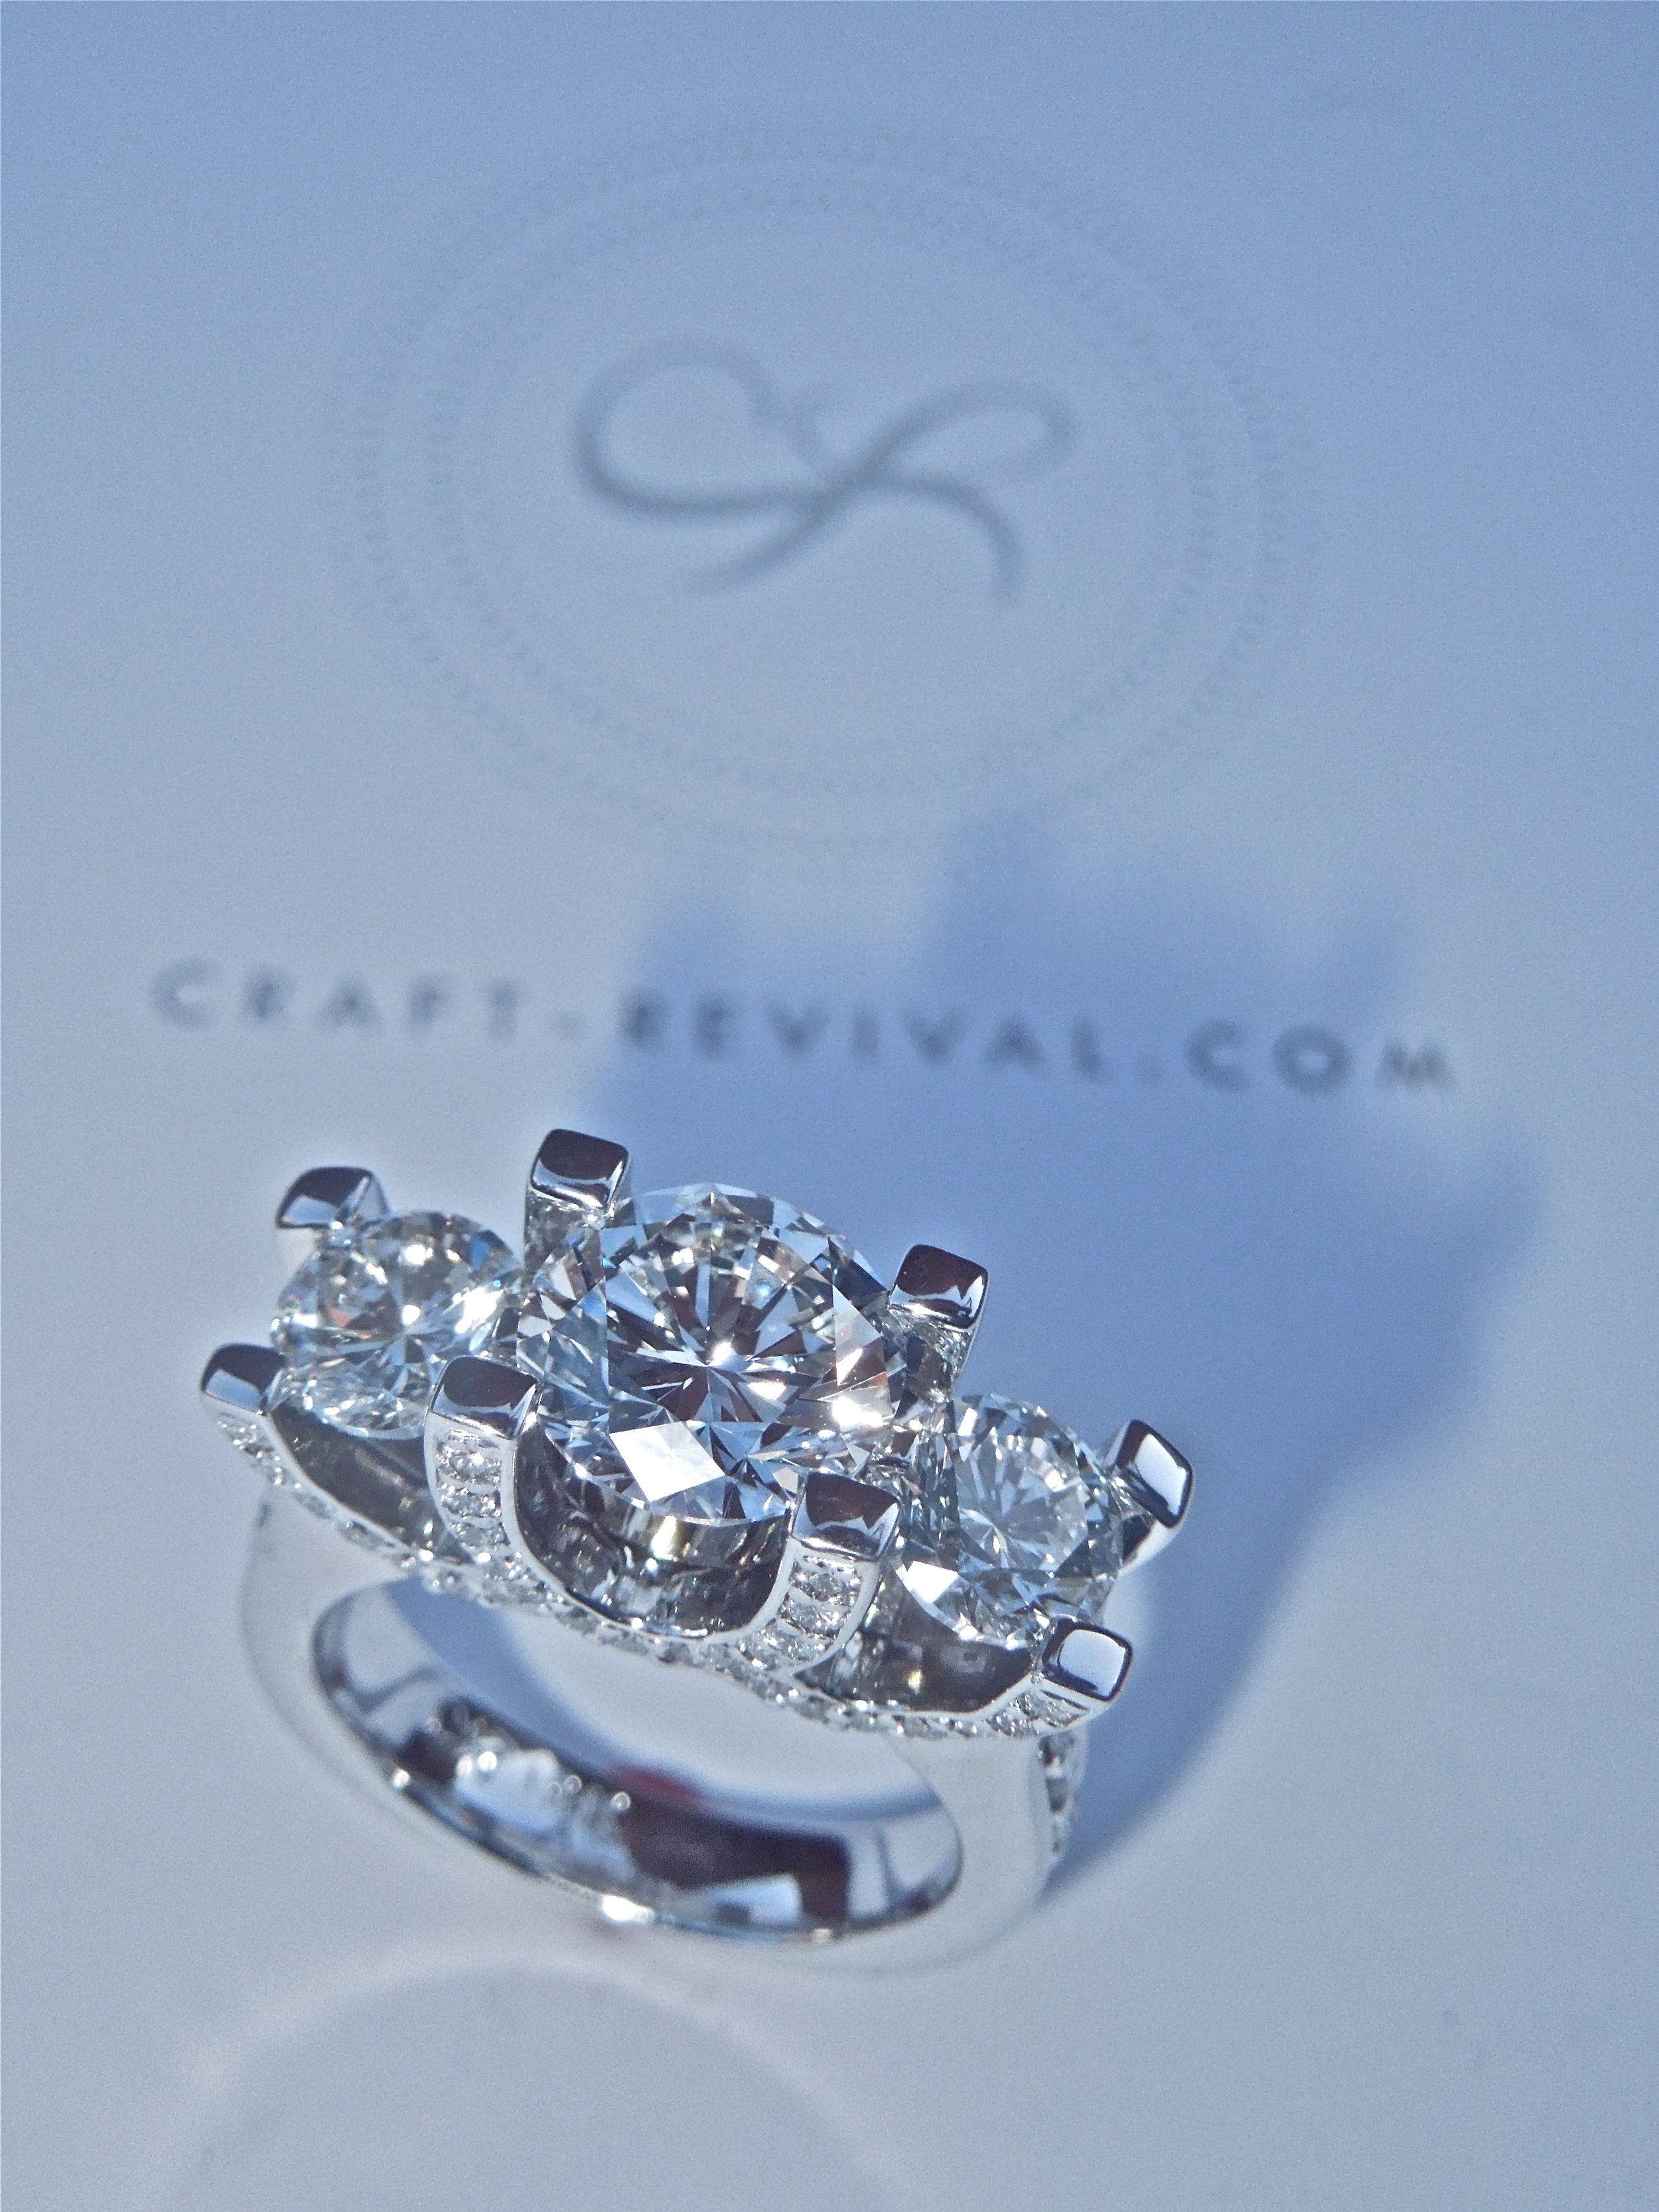 unique-diamond-engagement-ring-three-stone-ring-craft-revival-jewelry-store-grand-rapids